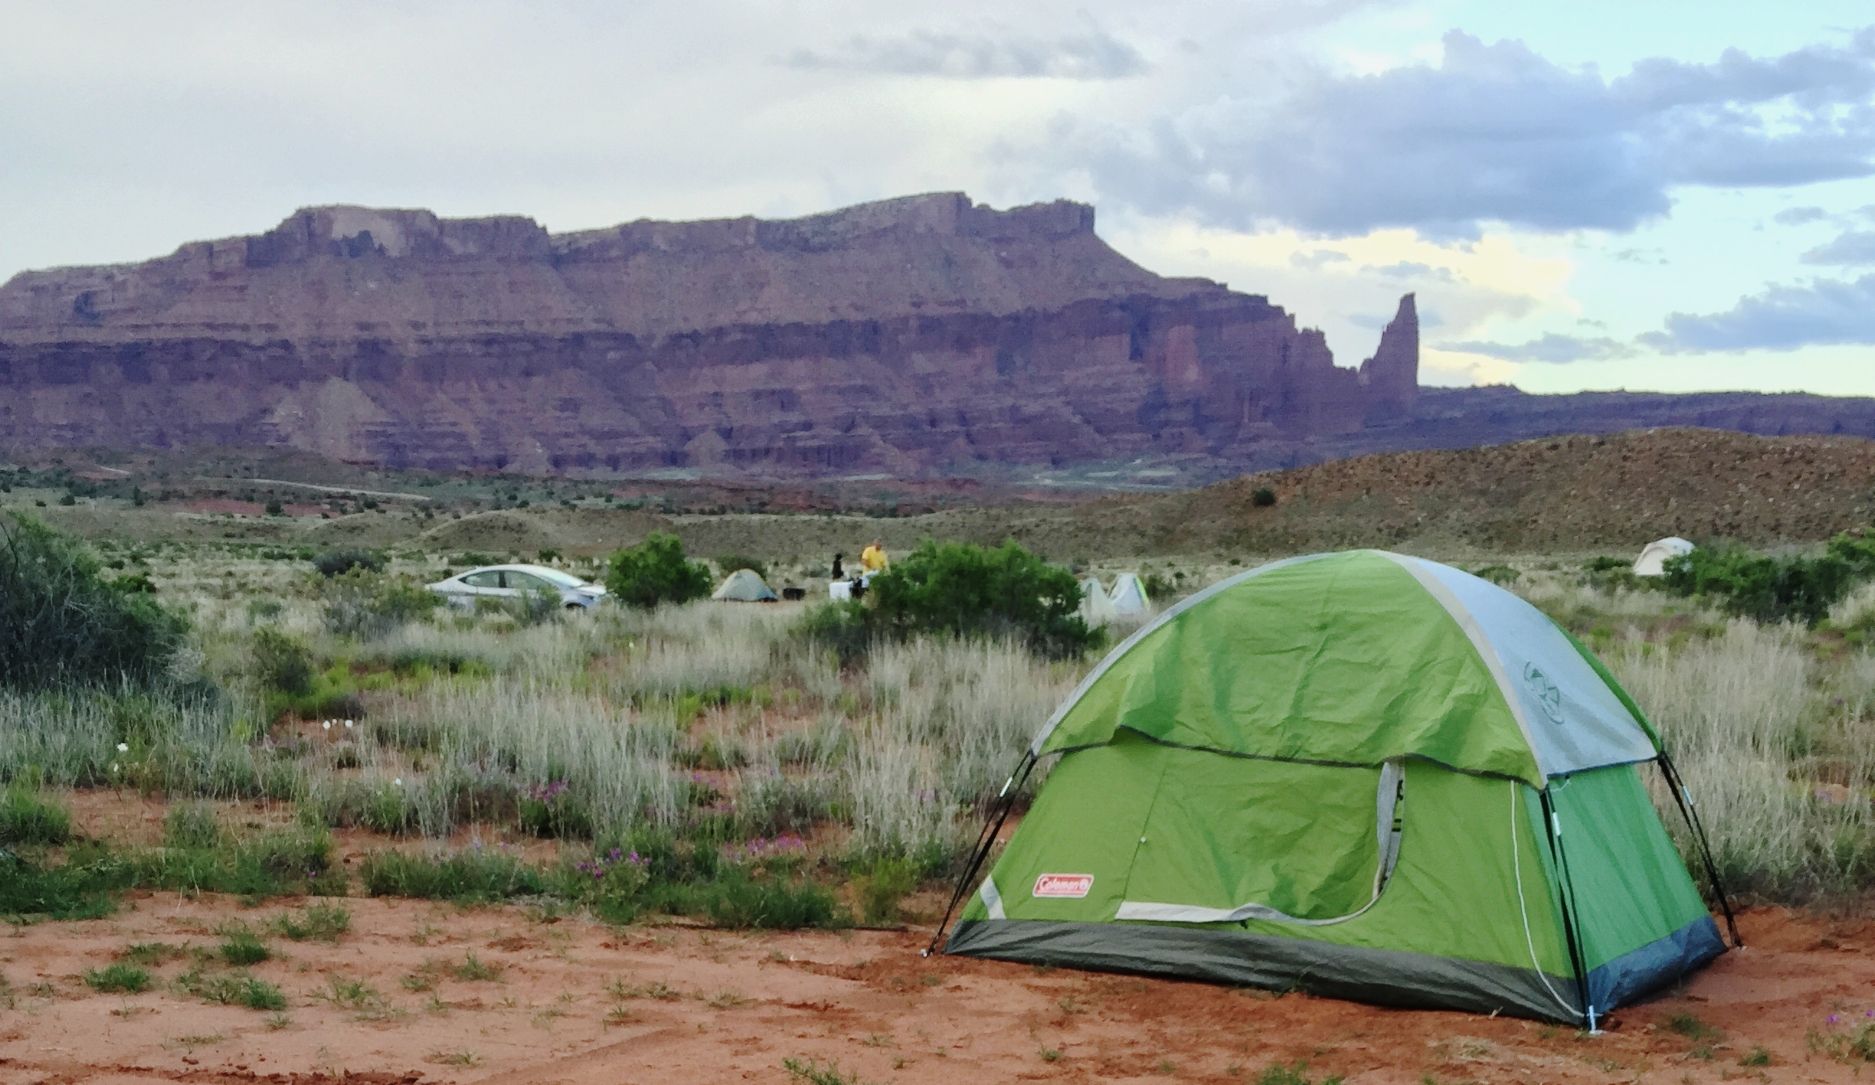 My first out-of-state camping trip with my Coleman Sundome 2 in Moab, Utah.